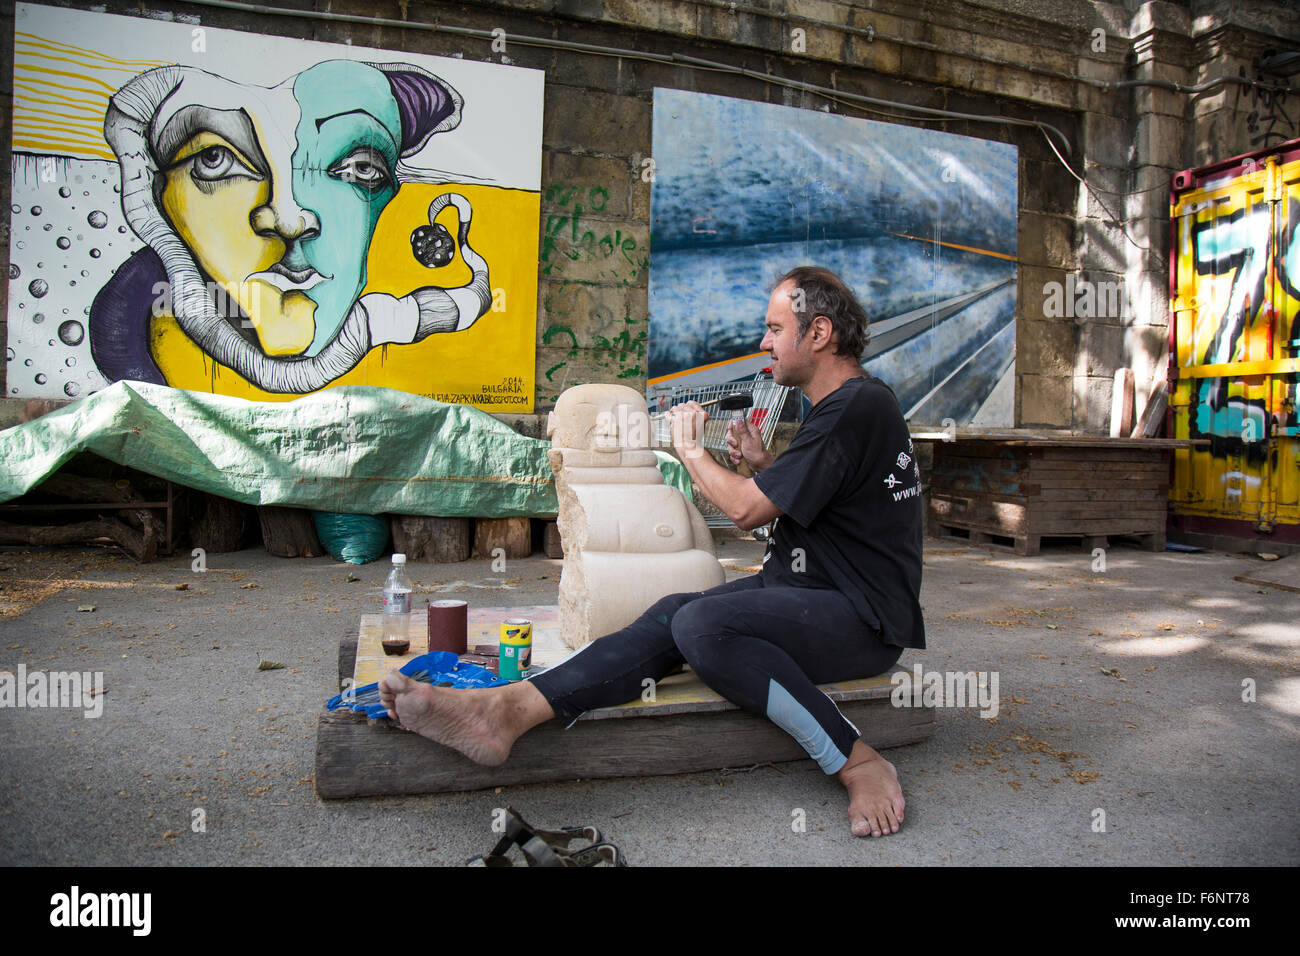 Sculptor Working on a Piece in Vienna - Stock Image